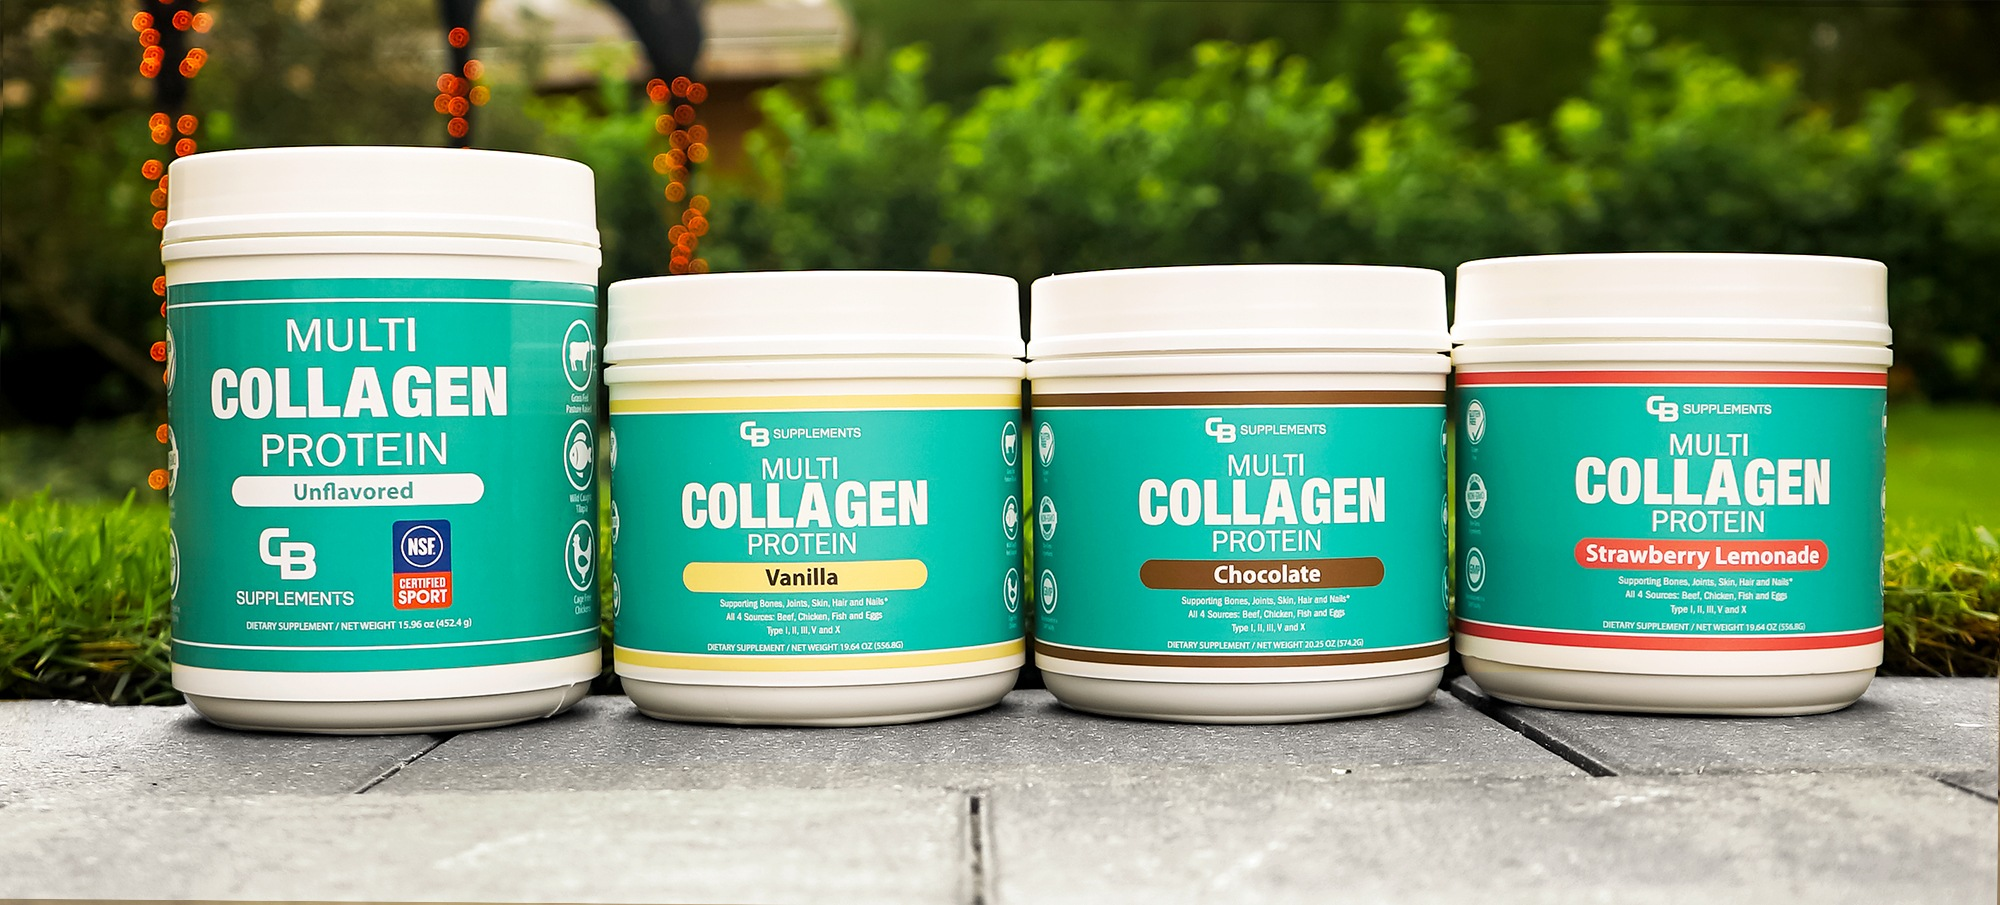 Multi Collagen Bundle 4 Containers